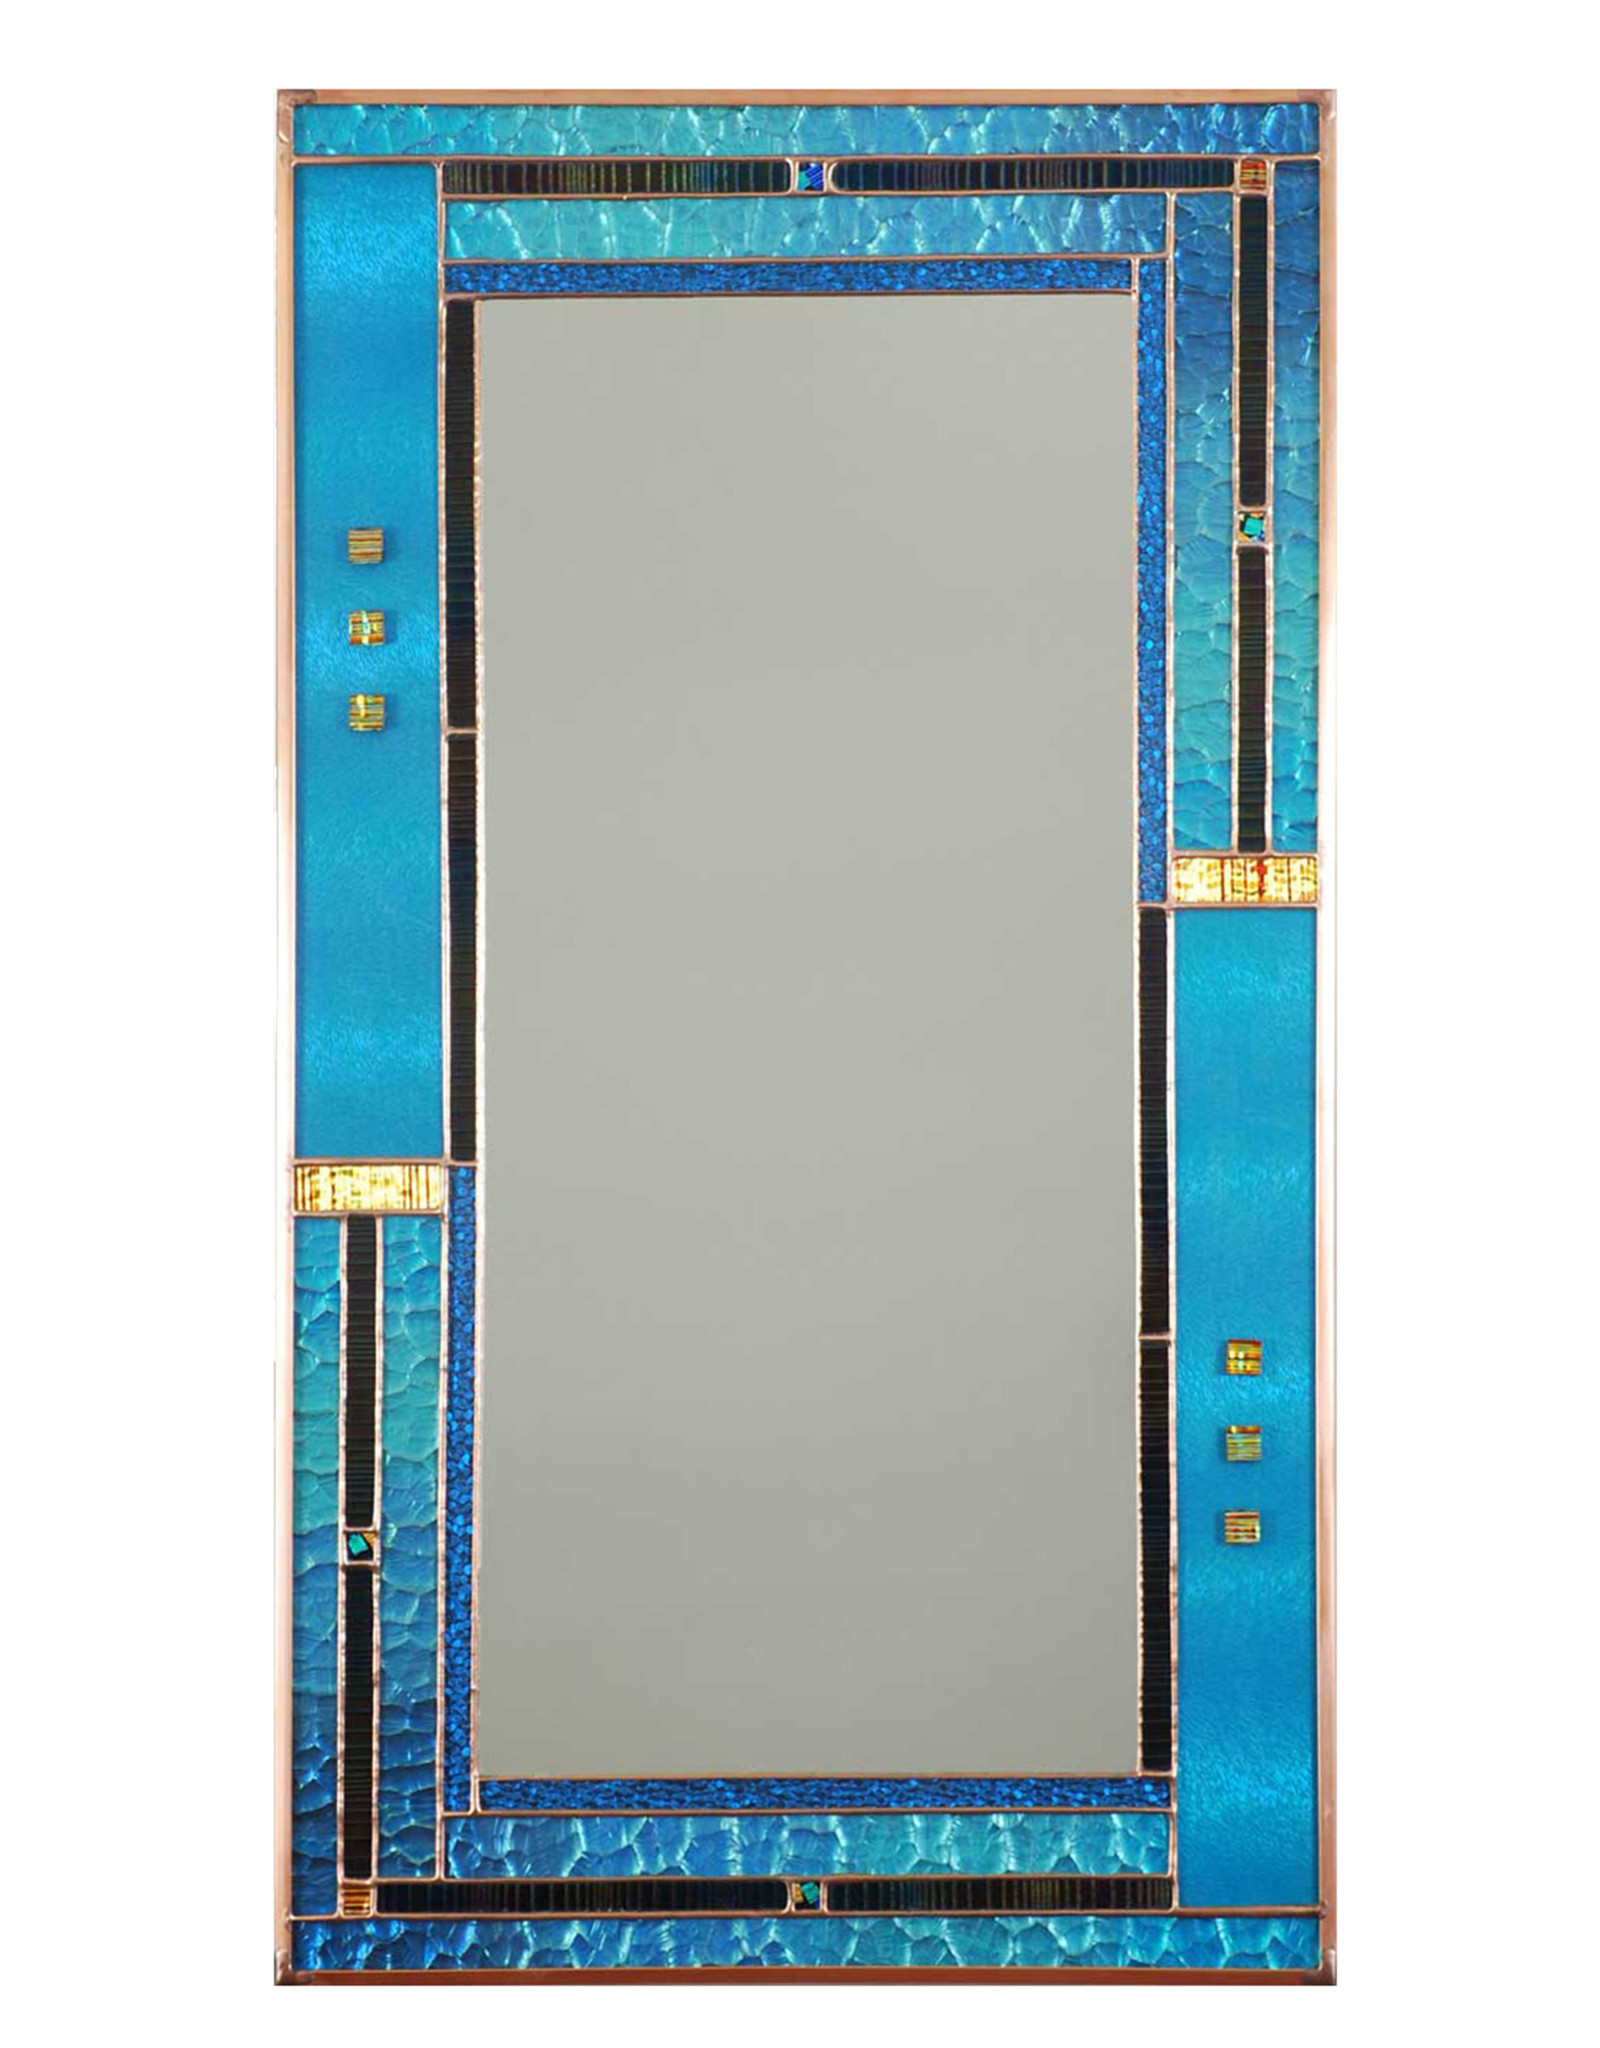 LIGHT IMAGES GLASS VERTICAL TORTOLA MIRROR